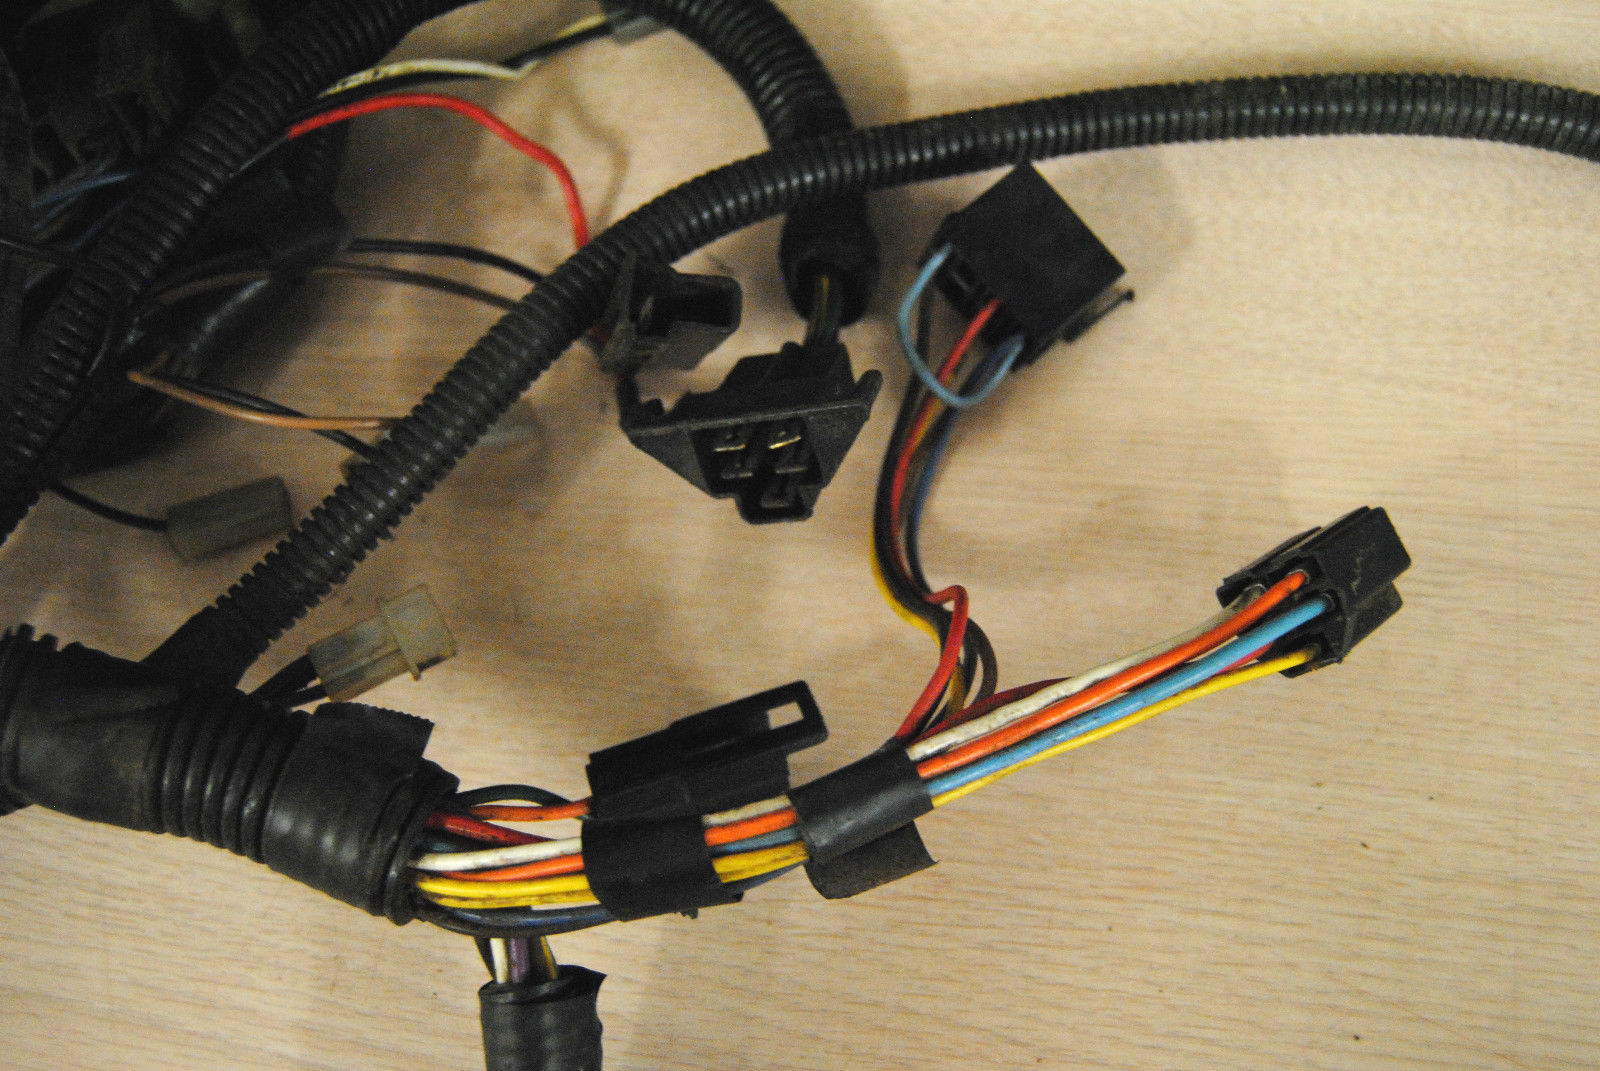 Toro Wheel Horse 72102 Wiring Harness and 50 similar items on wire lamp, wire cap, wire connector, wire sleeve, wire leads, wire ball, wire nut, wire holder, wire clothing, wire antenna,